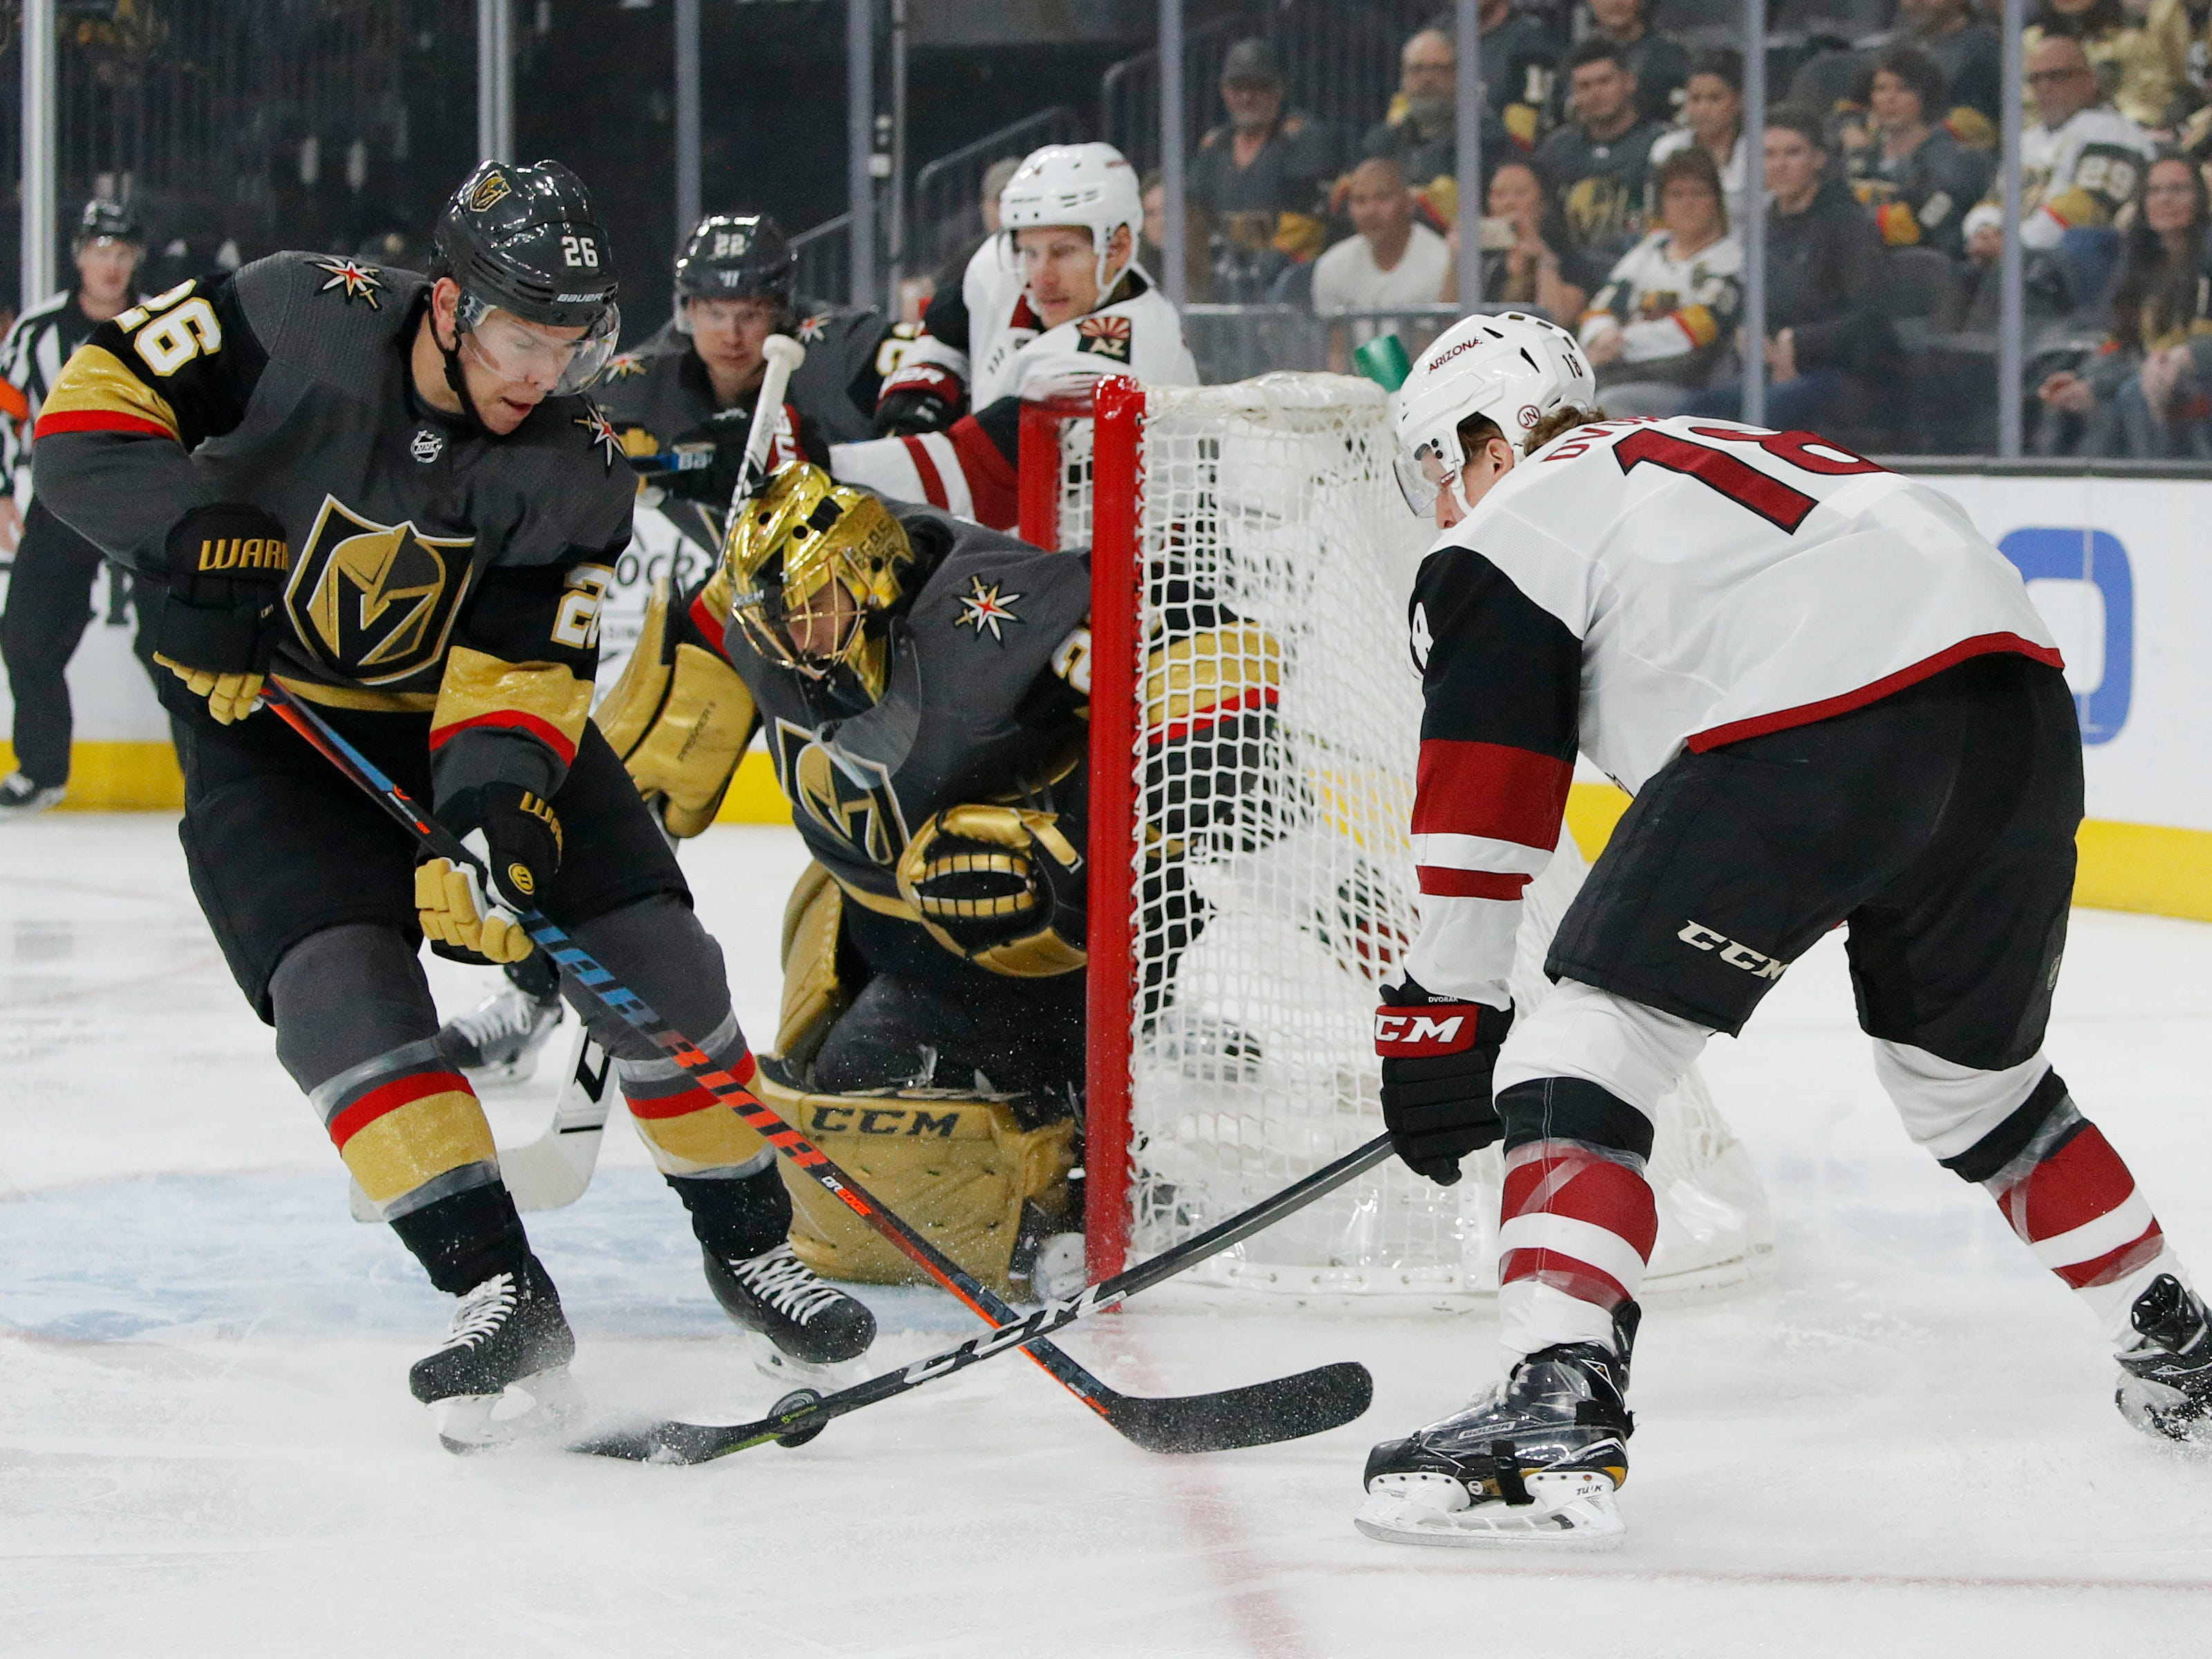 Vegas Golden Knights center Paul Stastny, left, knocks the puck away from Arizona Coyotes center Christian Dvorak during the first period of an NHL hockey game Thursday, April 4, 2019, in Las Vegas.